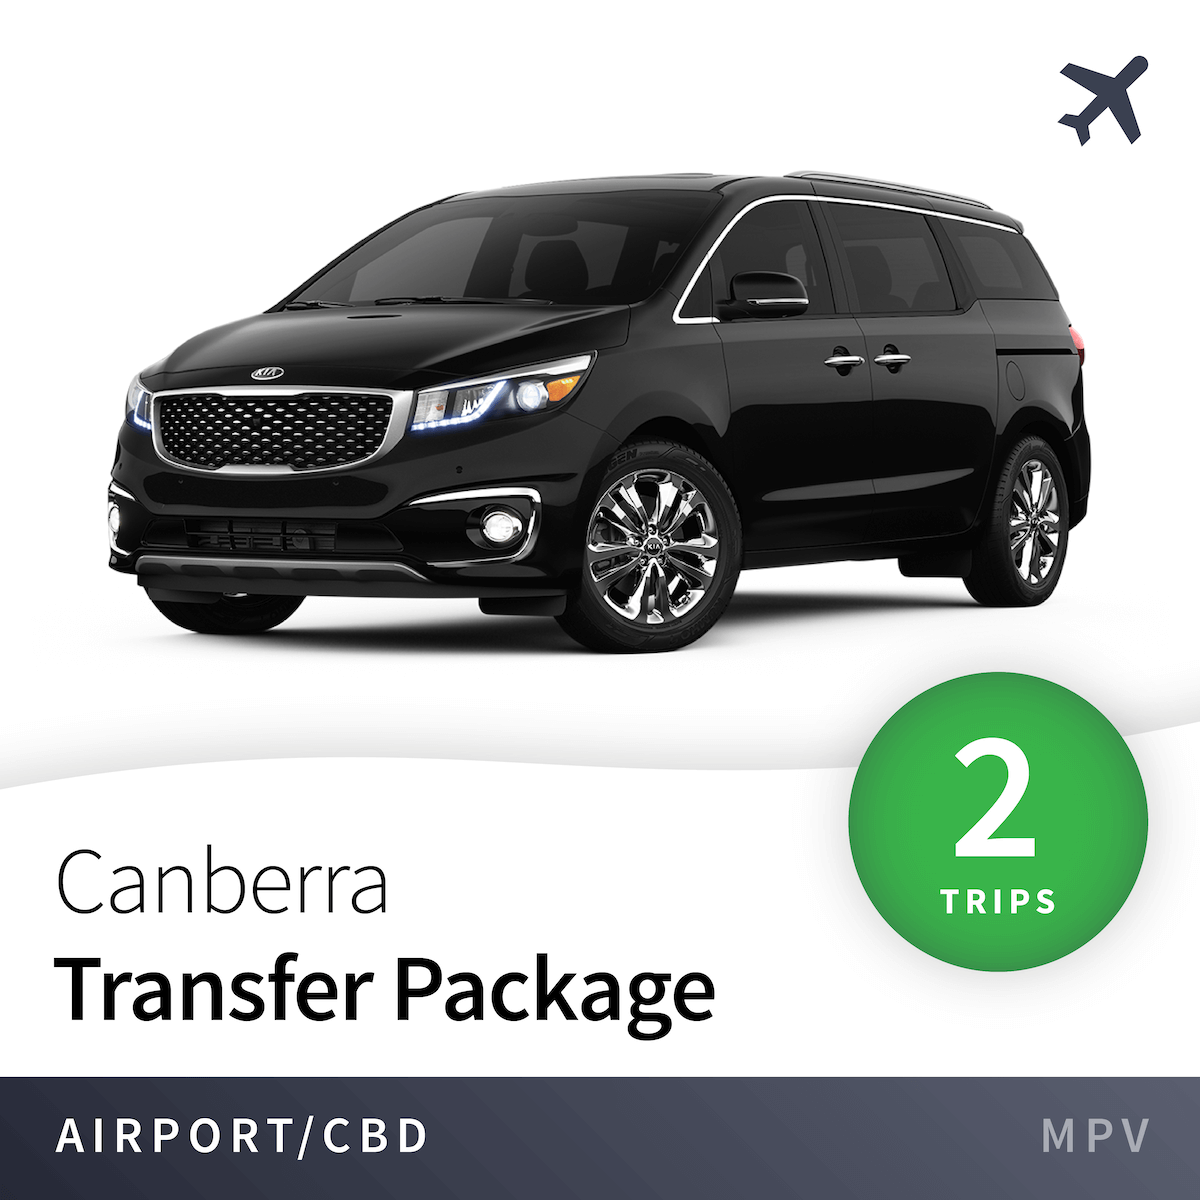 Canberra Airport Transfer Package - MPV (2 Trips) 3